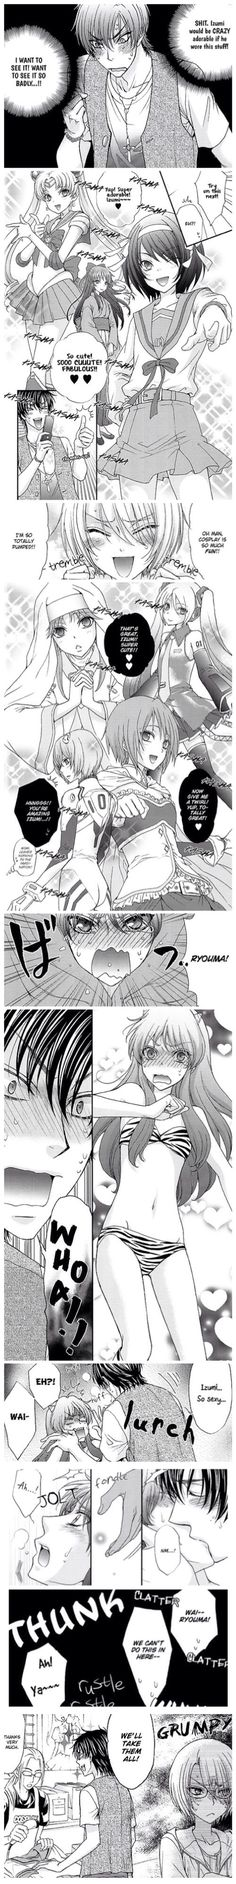 Love Stage!! ~~ An otaku's dream is dressing up their boyfriend in cosplay outfits! :: Chapter 41.2